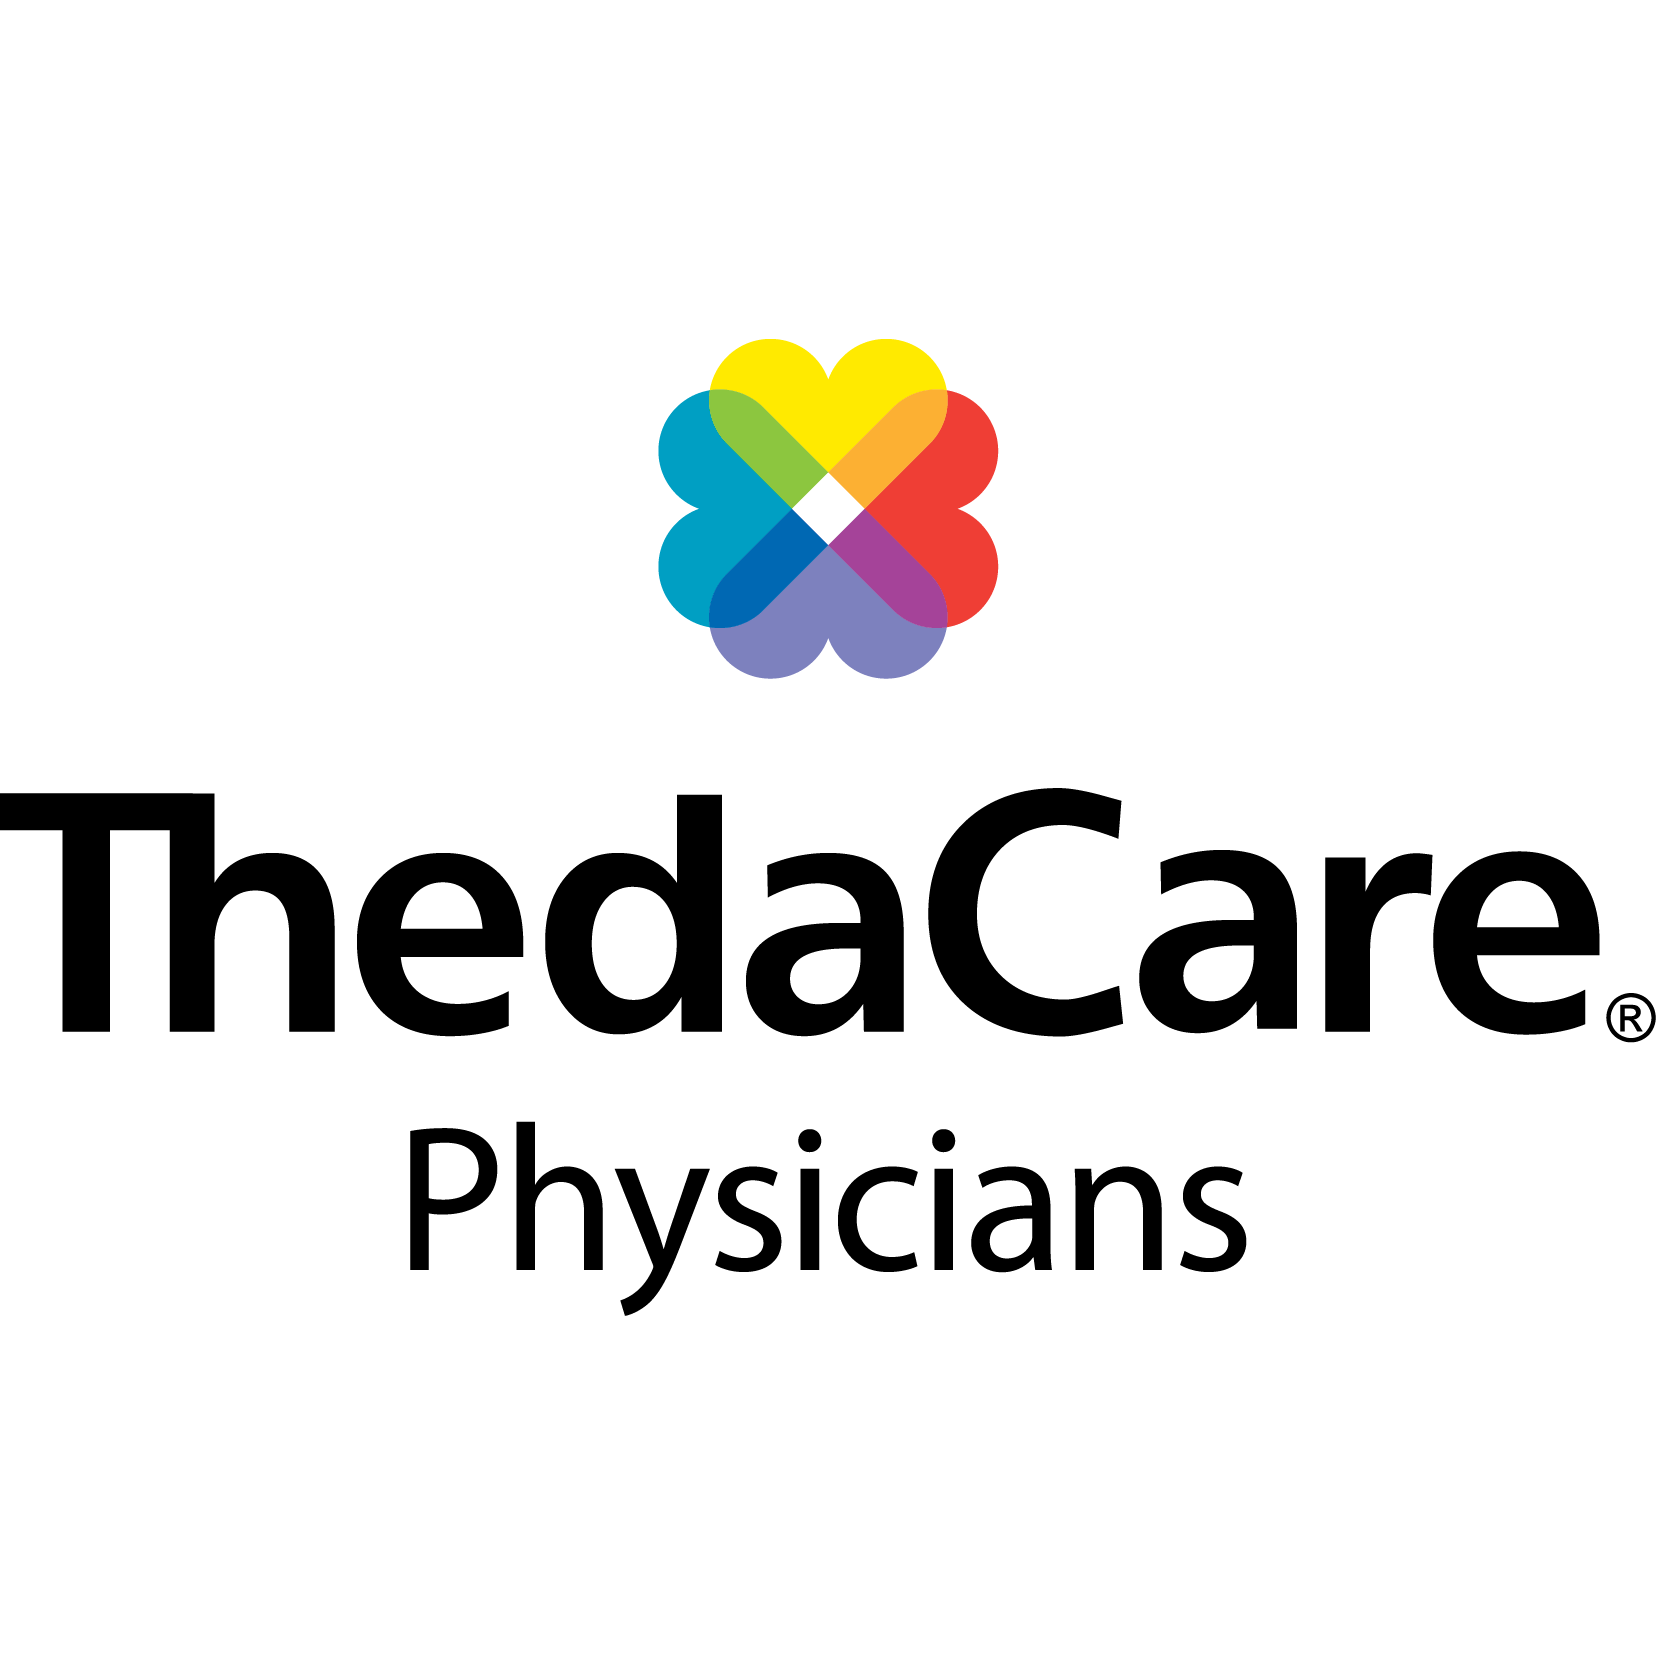 ThedaCare Physicians-Iola - Iola, WI - General or Family Practice Physicians